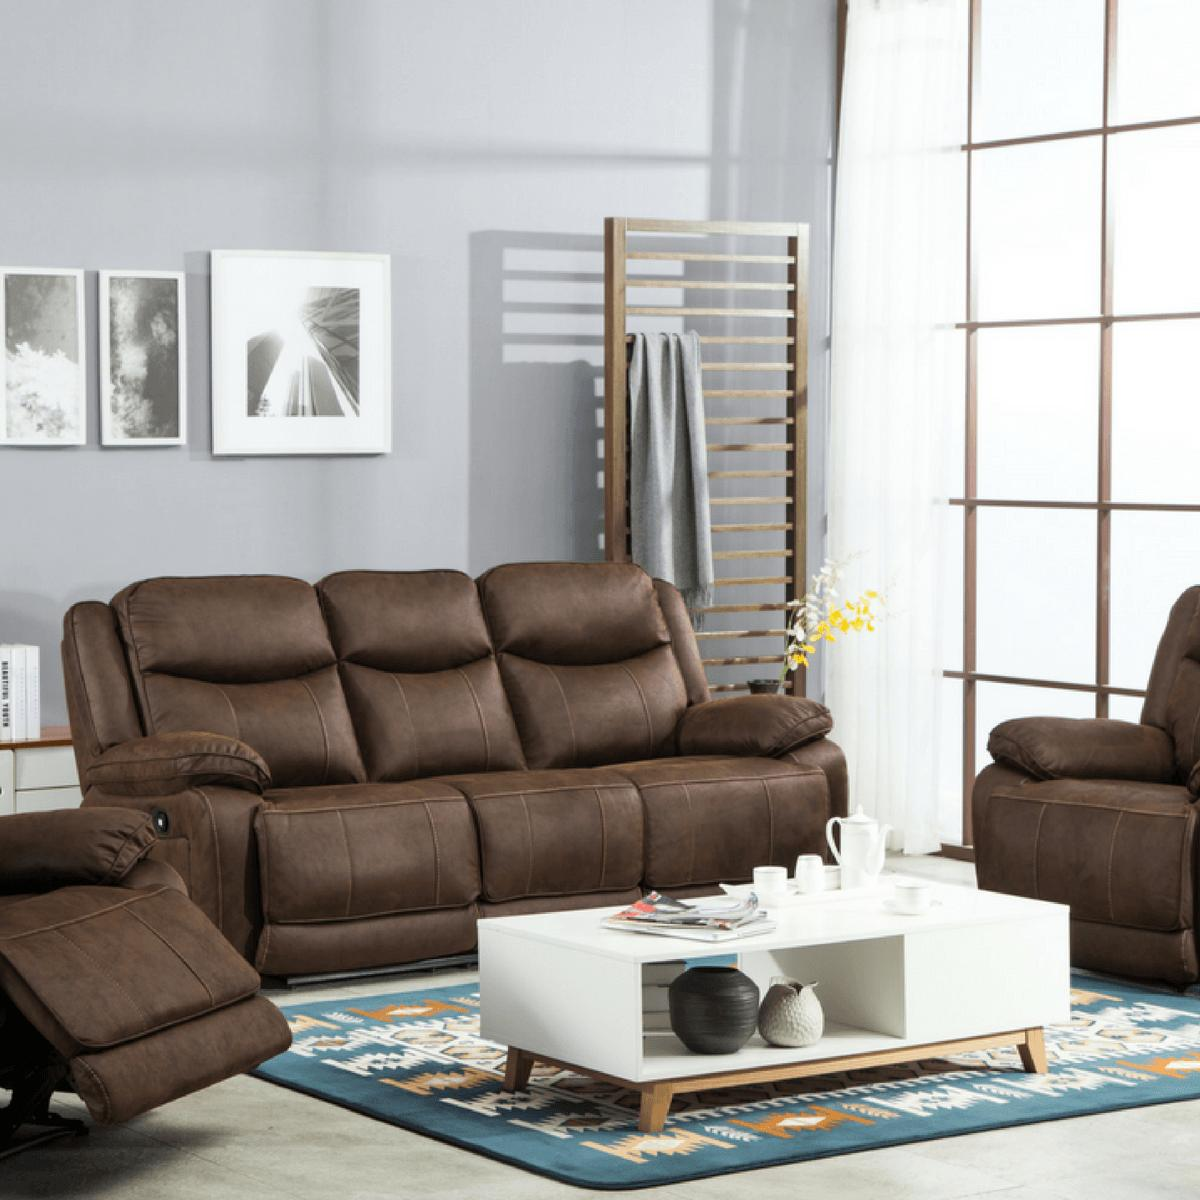 Plymouth 2 Seater - Recliner